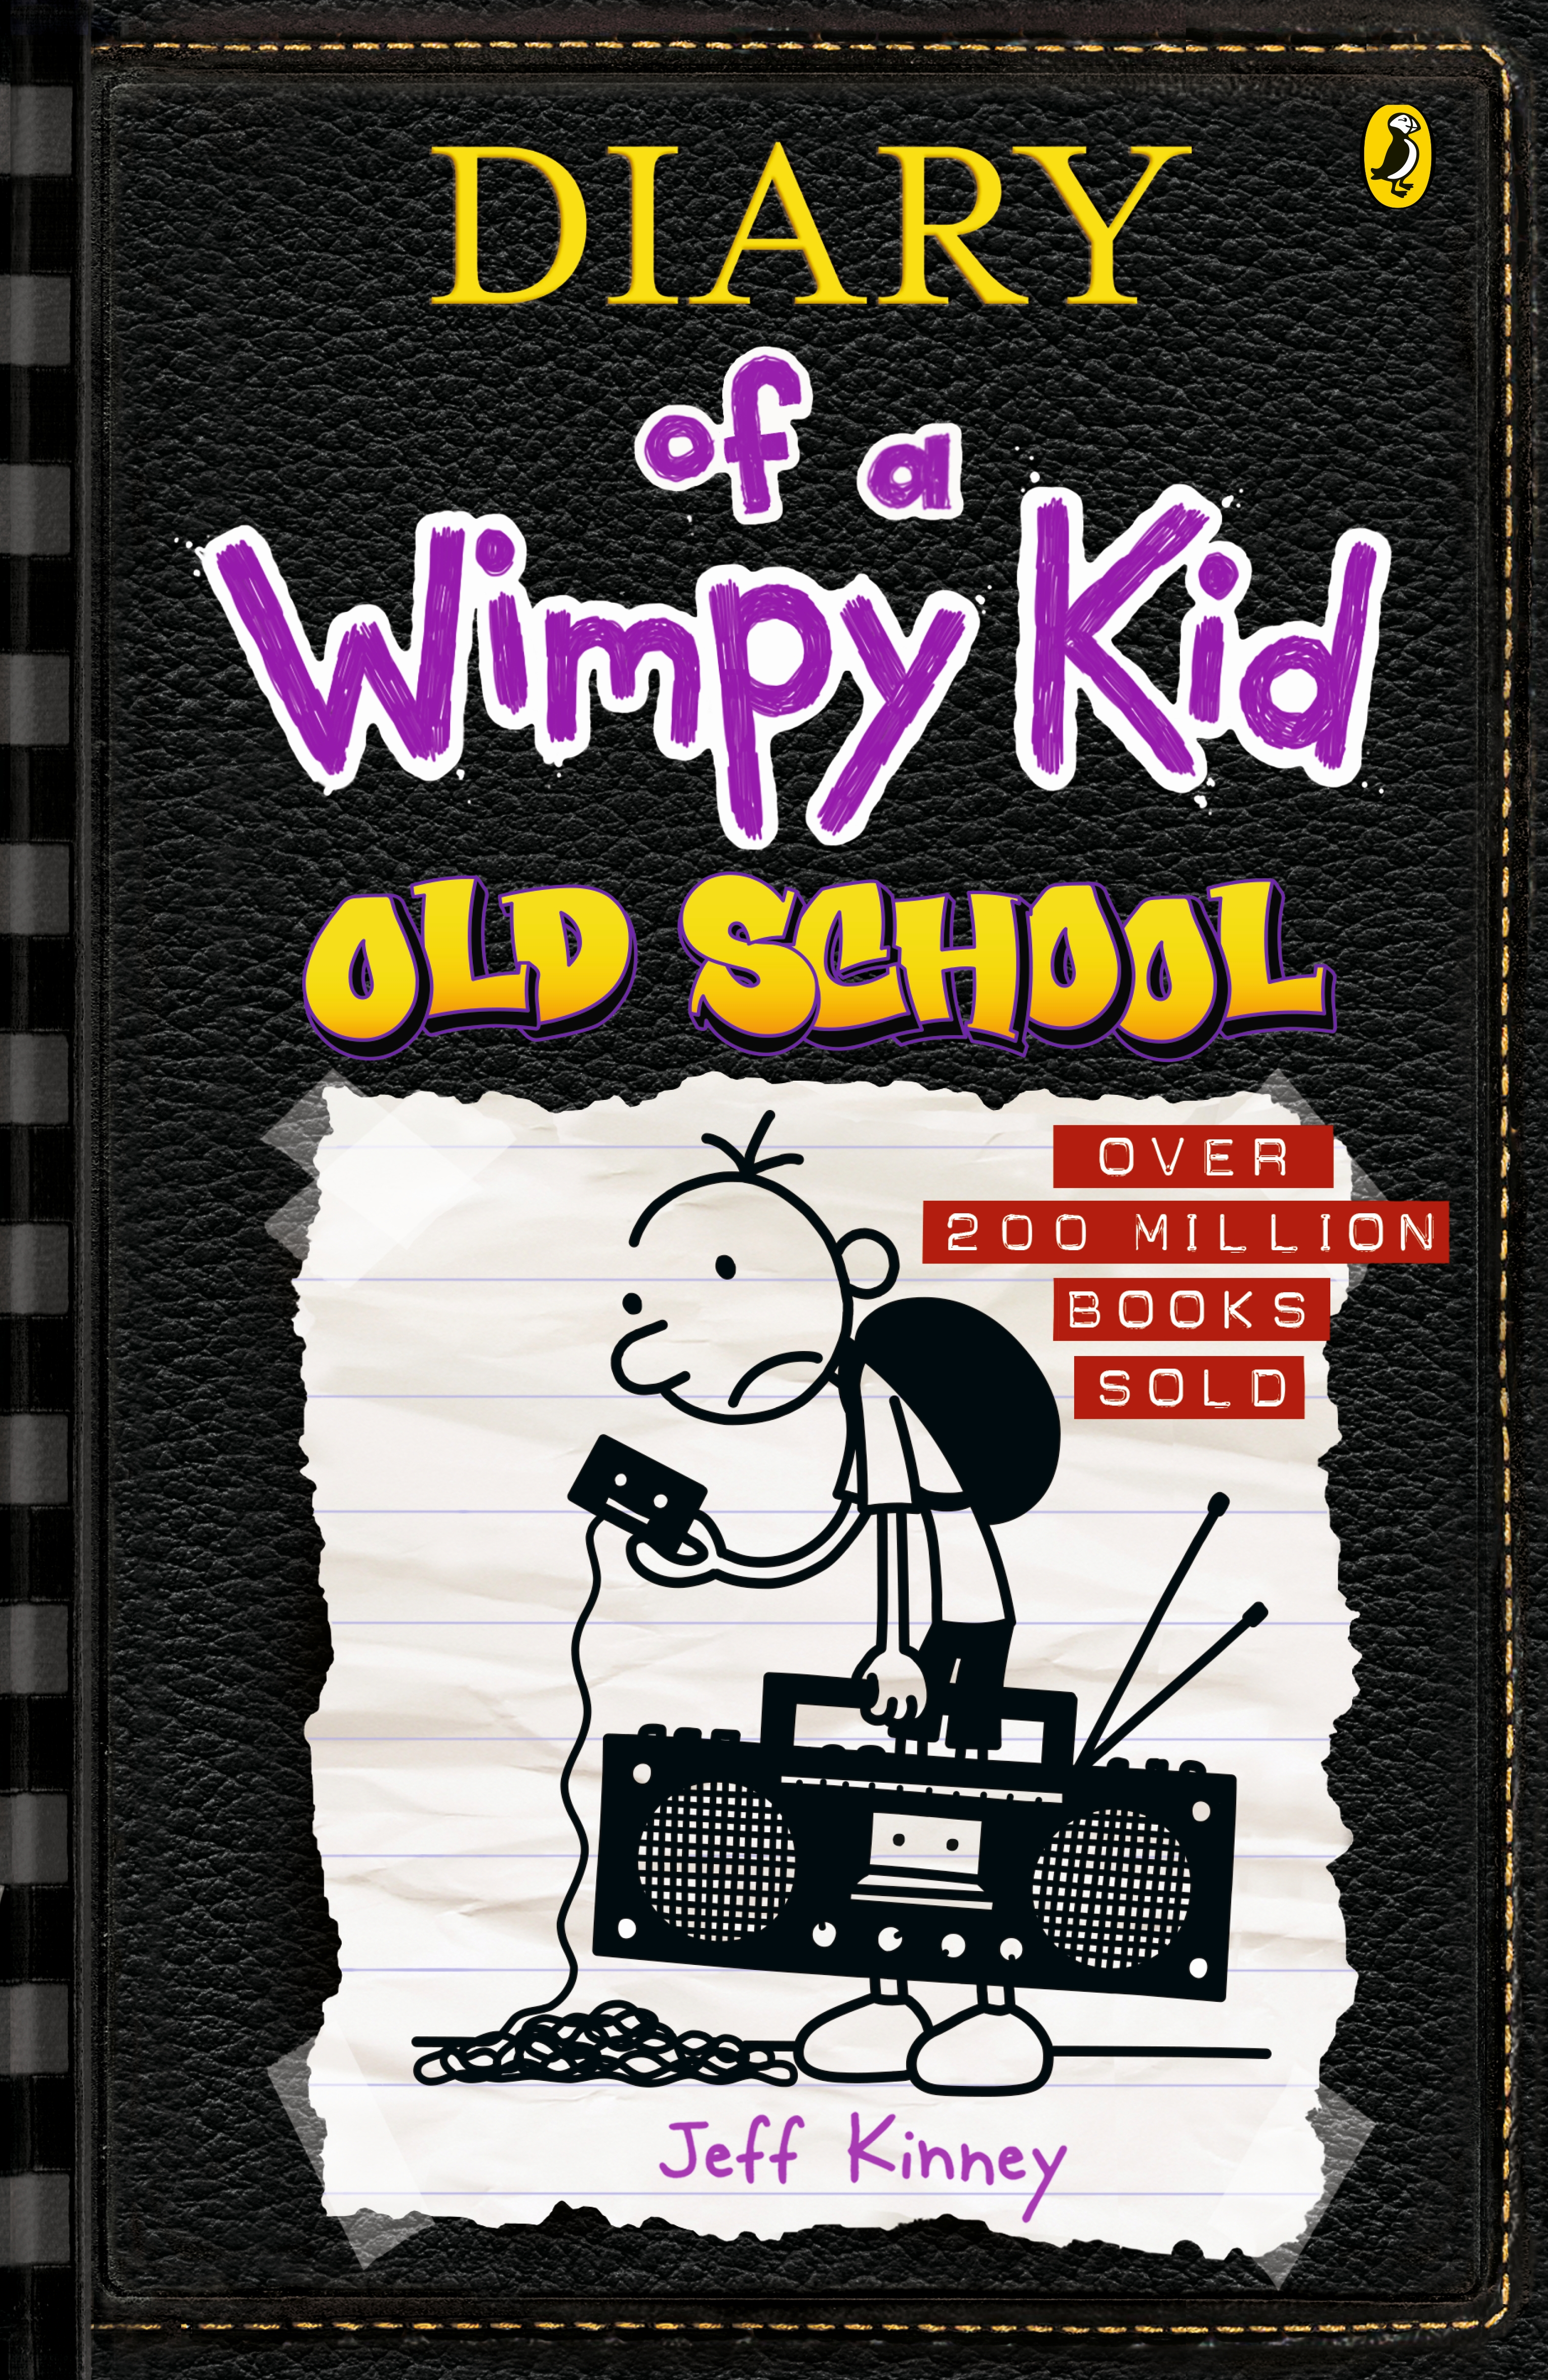 Cover Art for Old School (Diary of a Wimpy Kid), ISBN: 9780143309000